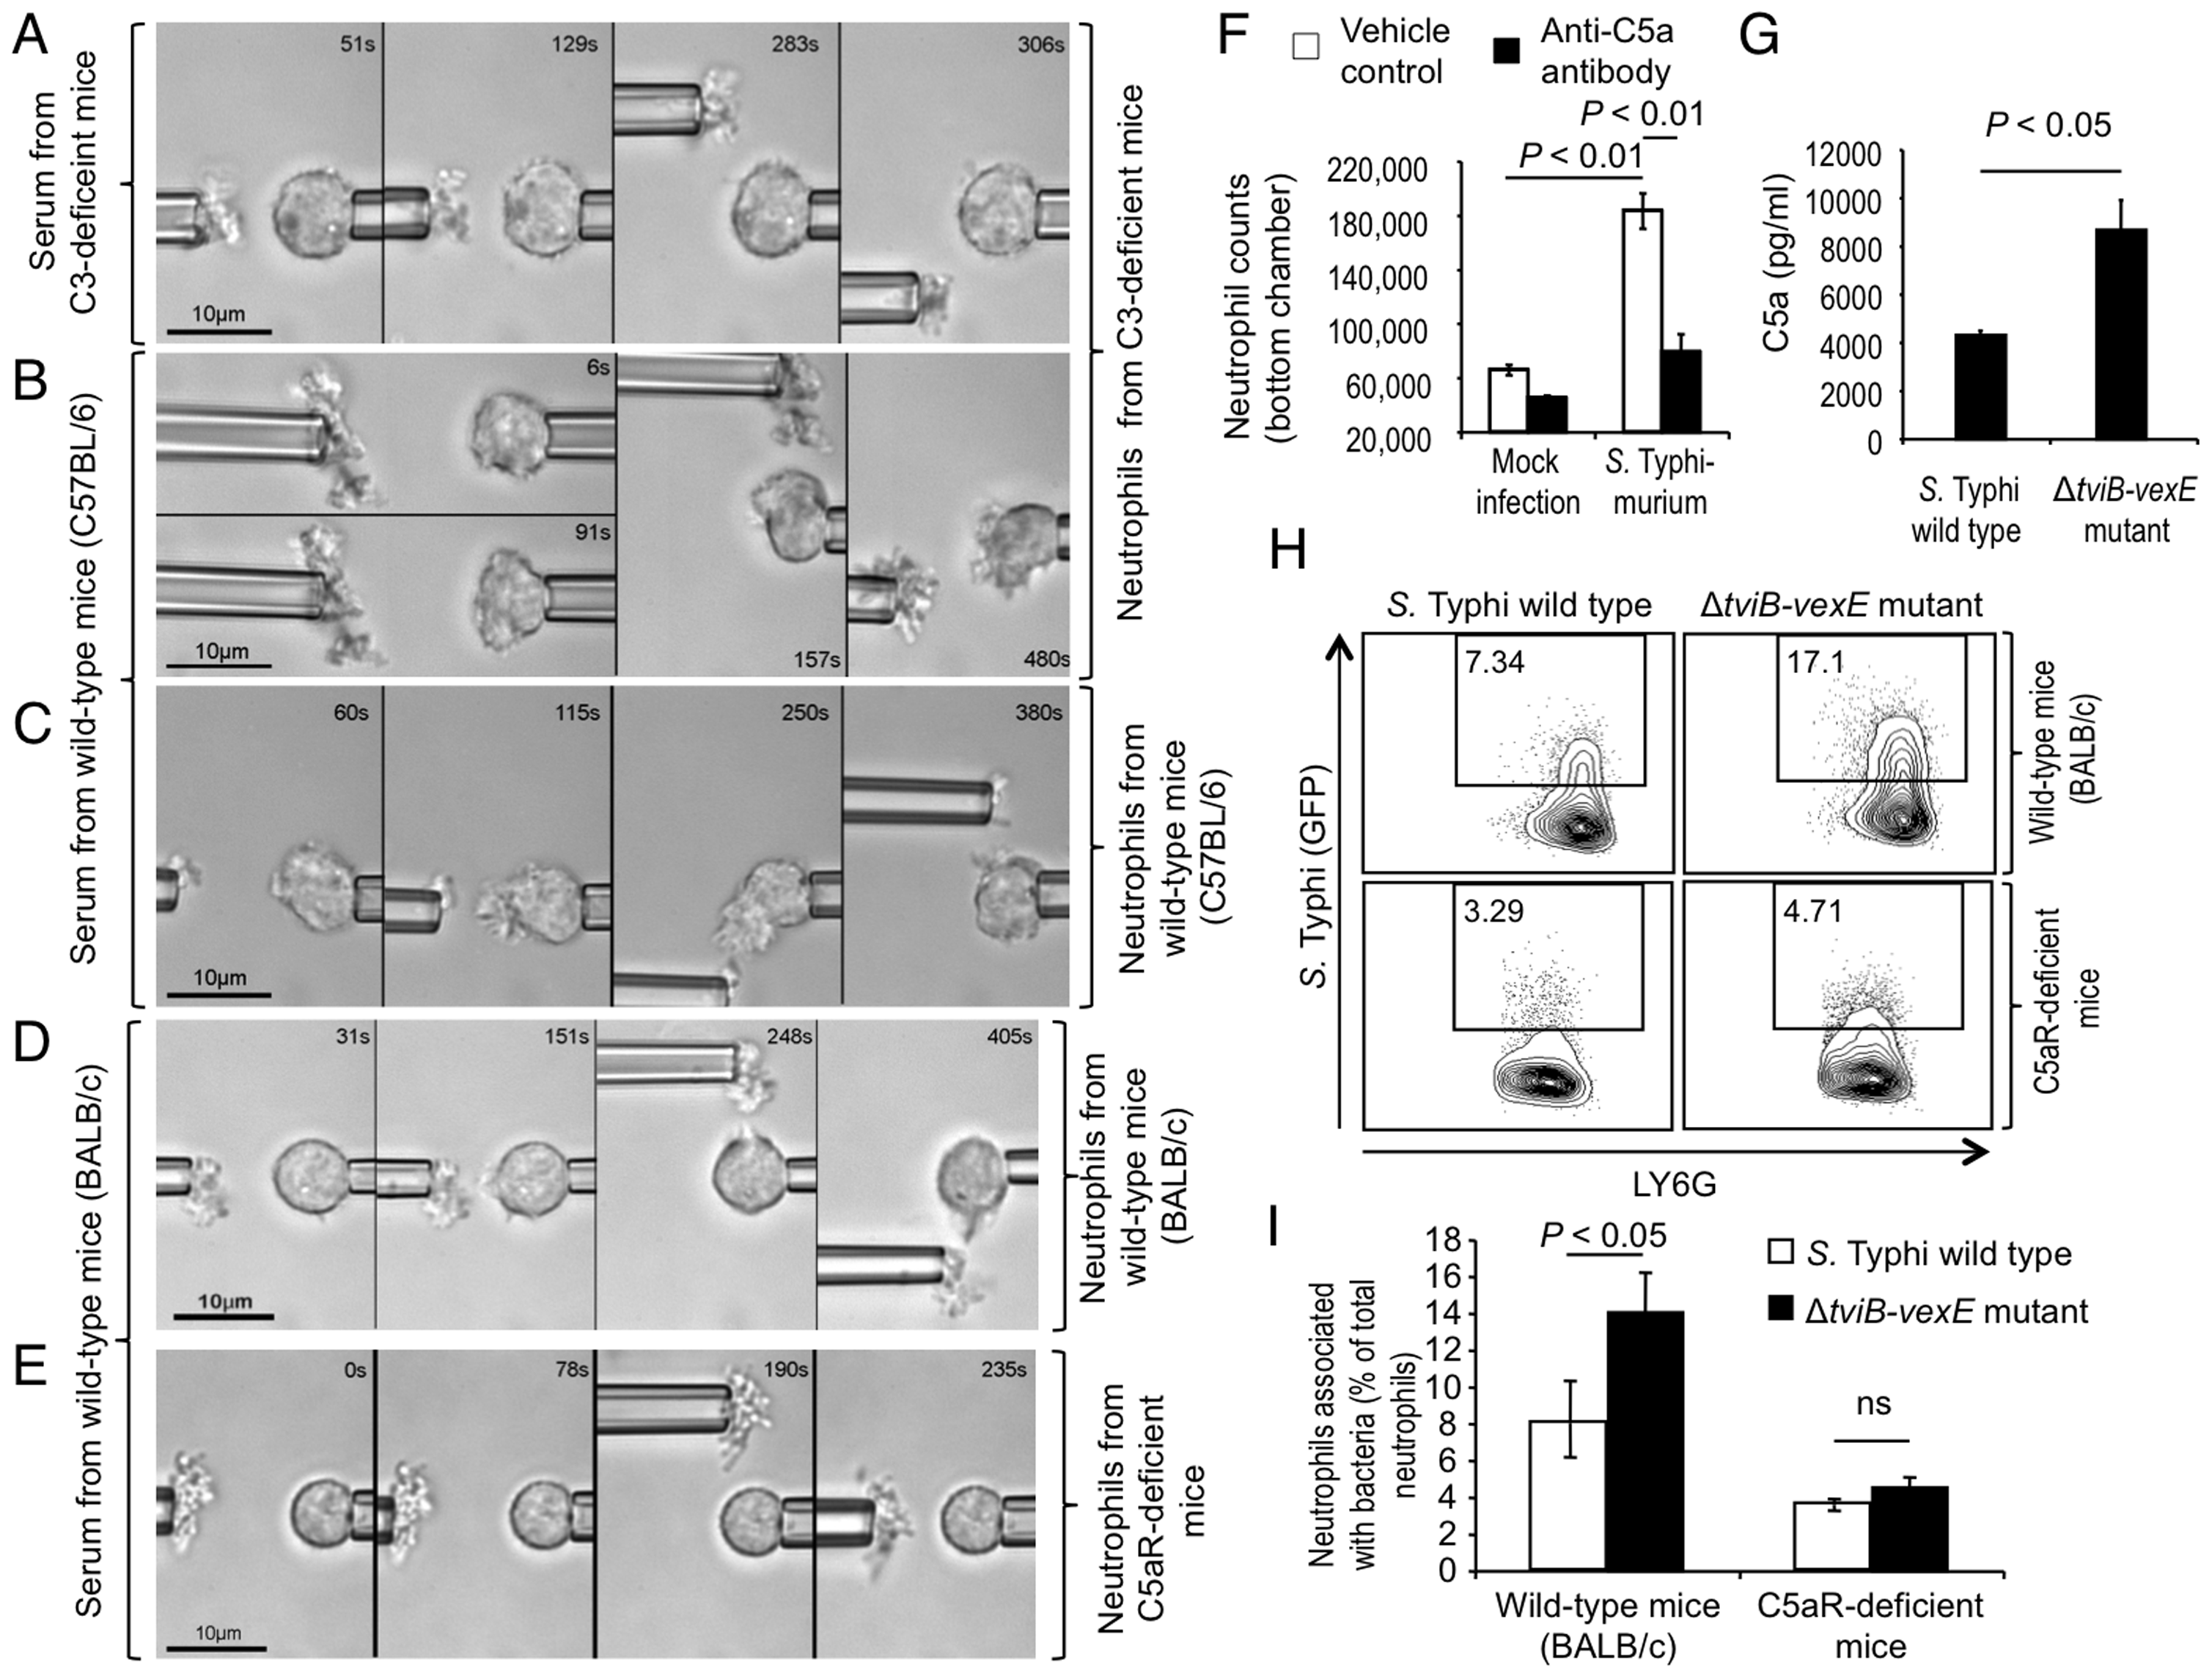 The Vi capsular polysaccharide inhibits chemotactic responses of murine neutrophils <i>in vitro</i> and <i>in vivo</i>.